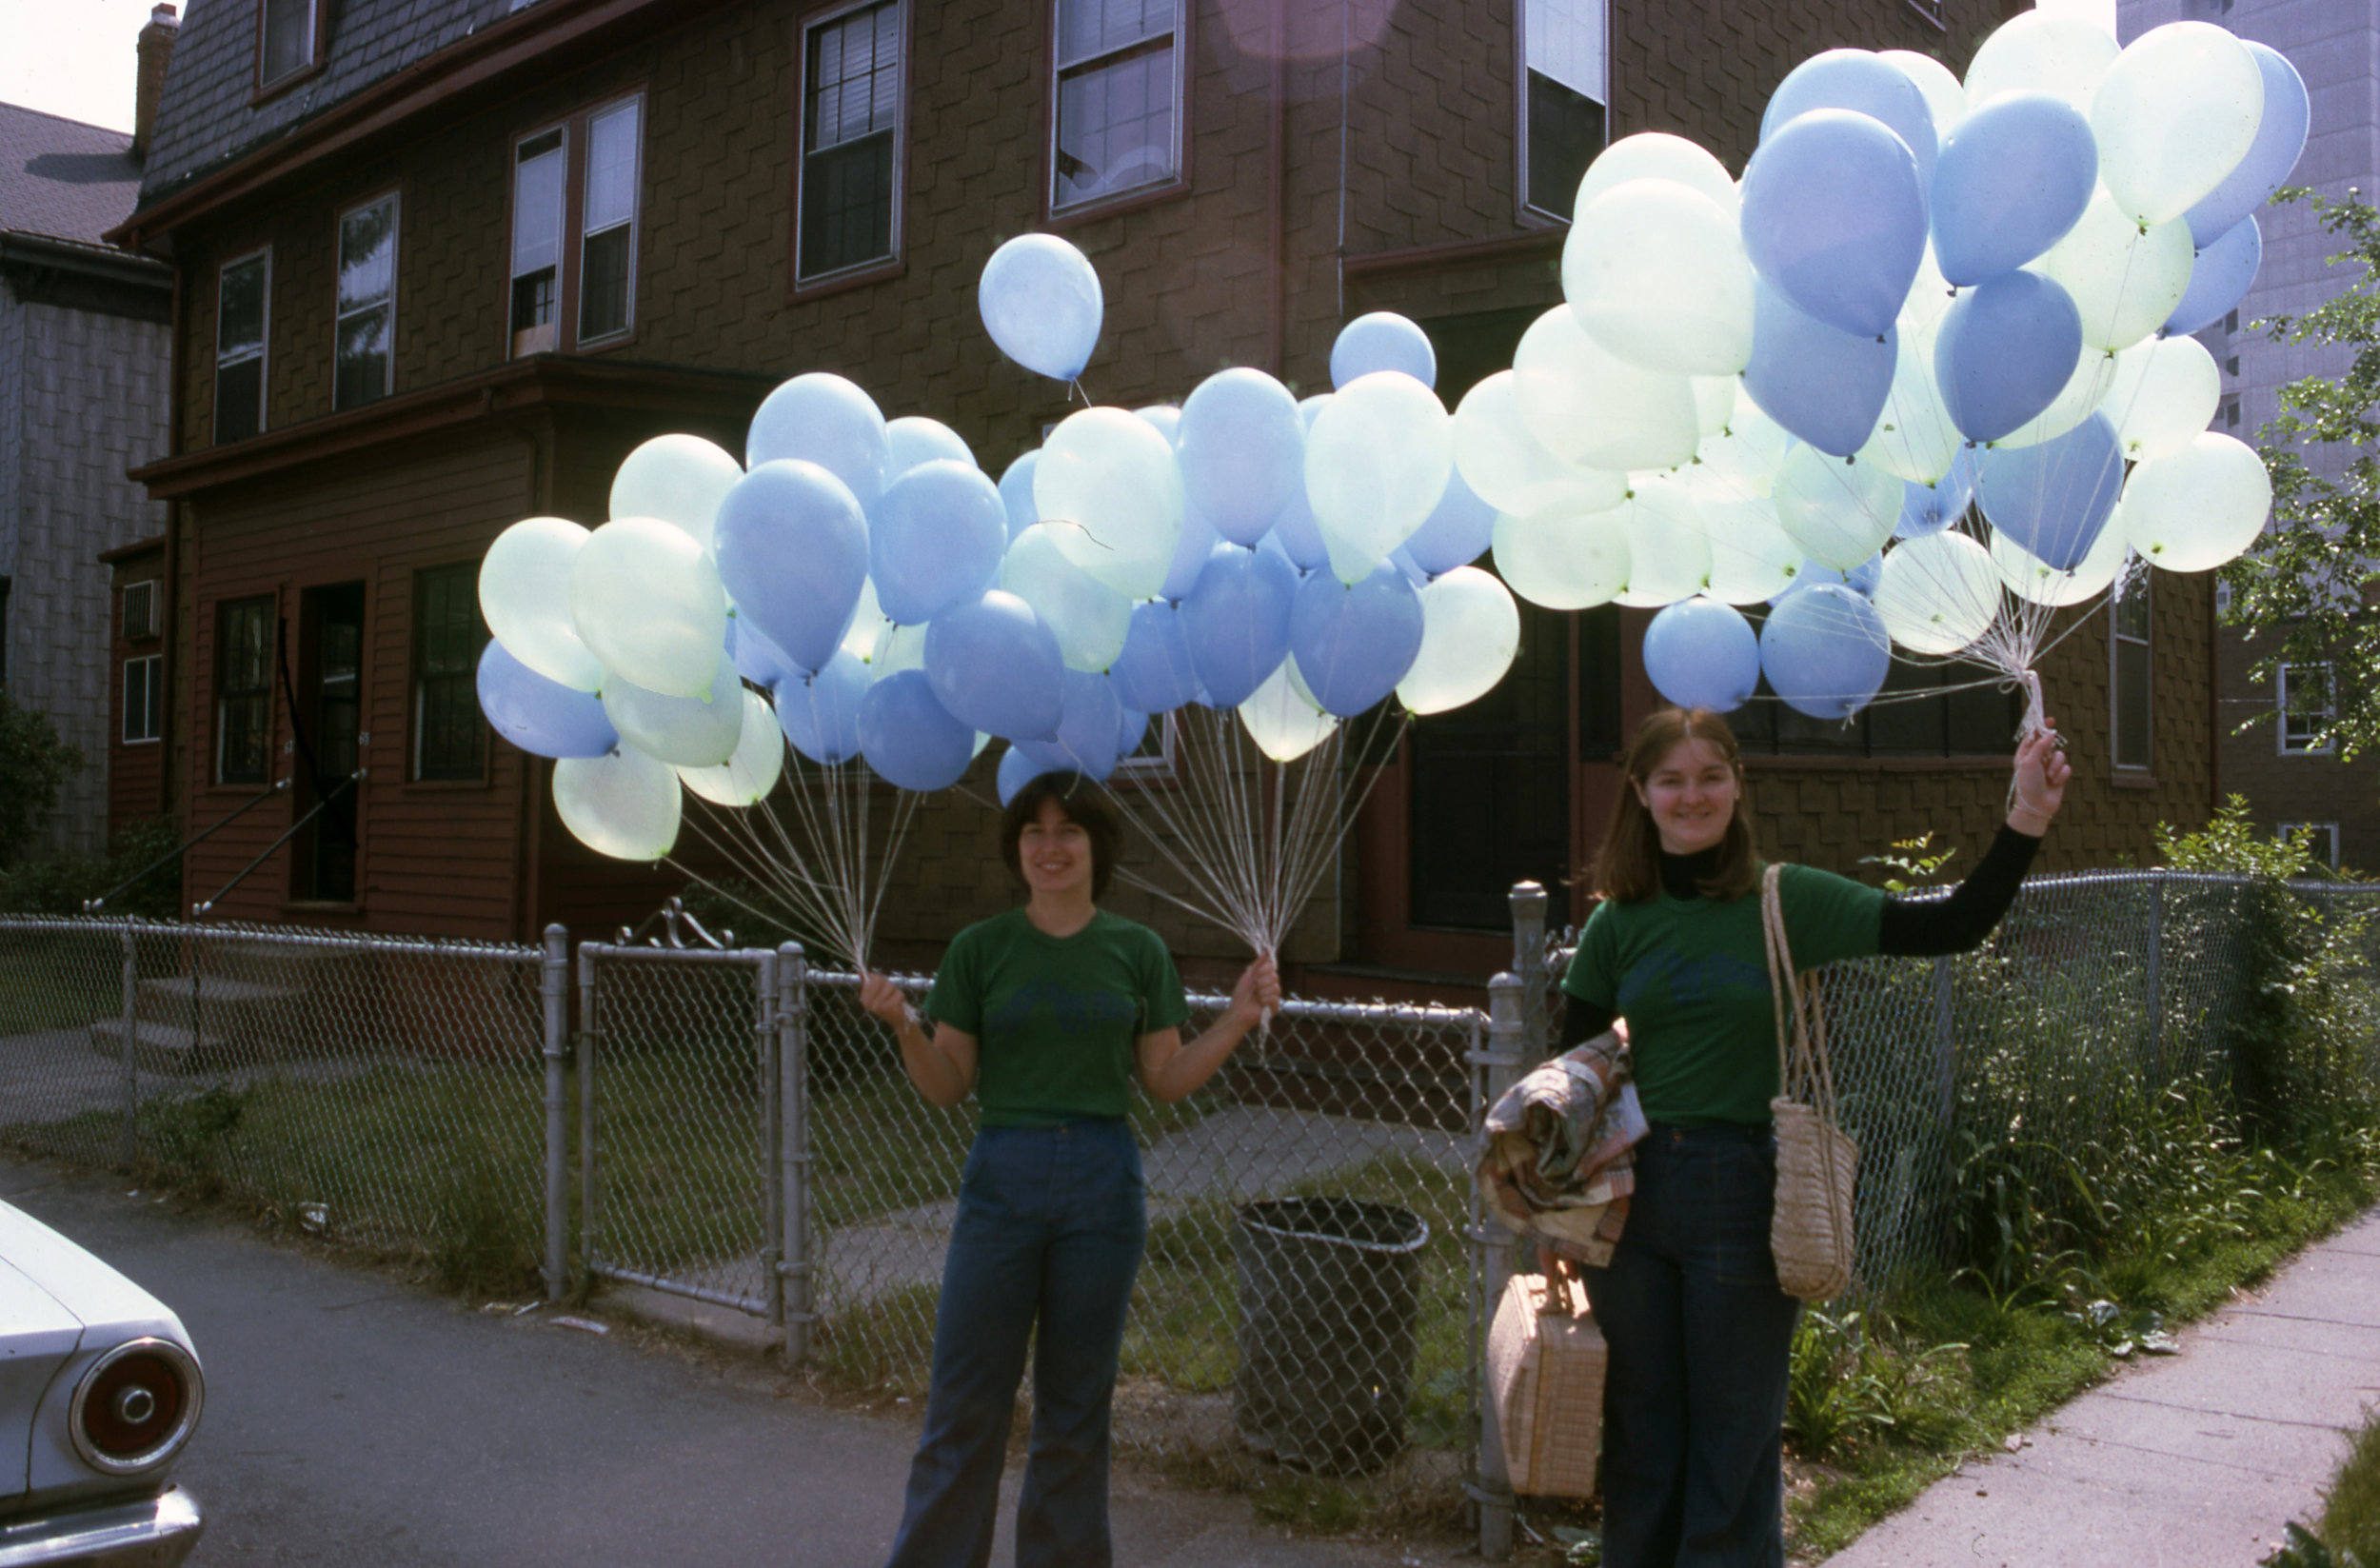 """Monica Hynes-Payack and Mary Shepherd with some of Poet Peter Payack's 5,000 """"Poetry Balloons"""" at the first Cambridge River Festival in 1976. Each balloon was filled with a poem. Poems ranged from Cambridge school children to the nations Poet Laureate, Robert Pinsky."""